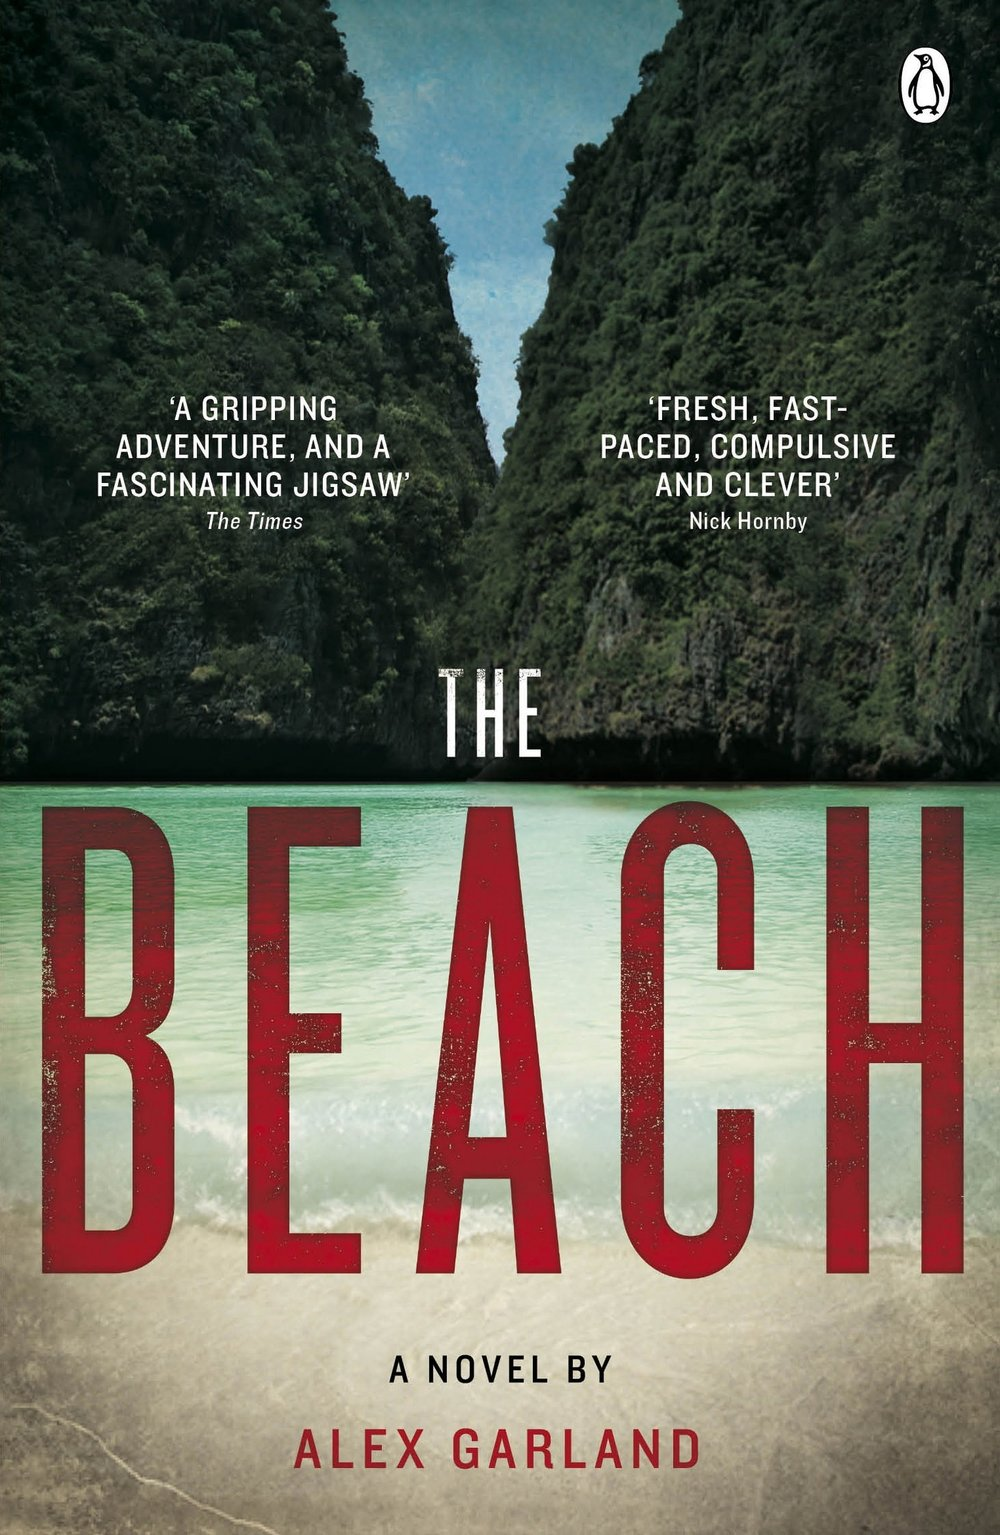 Cover for Alex Garland's The Beach. Image credit:    Amazon   /Fair use